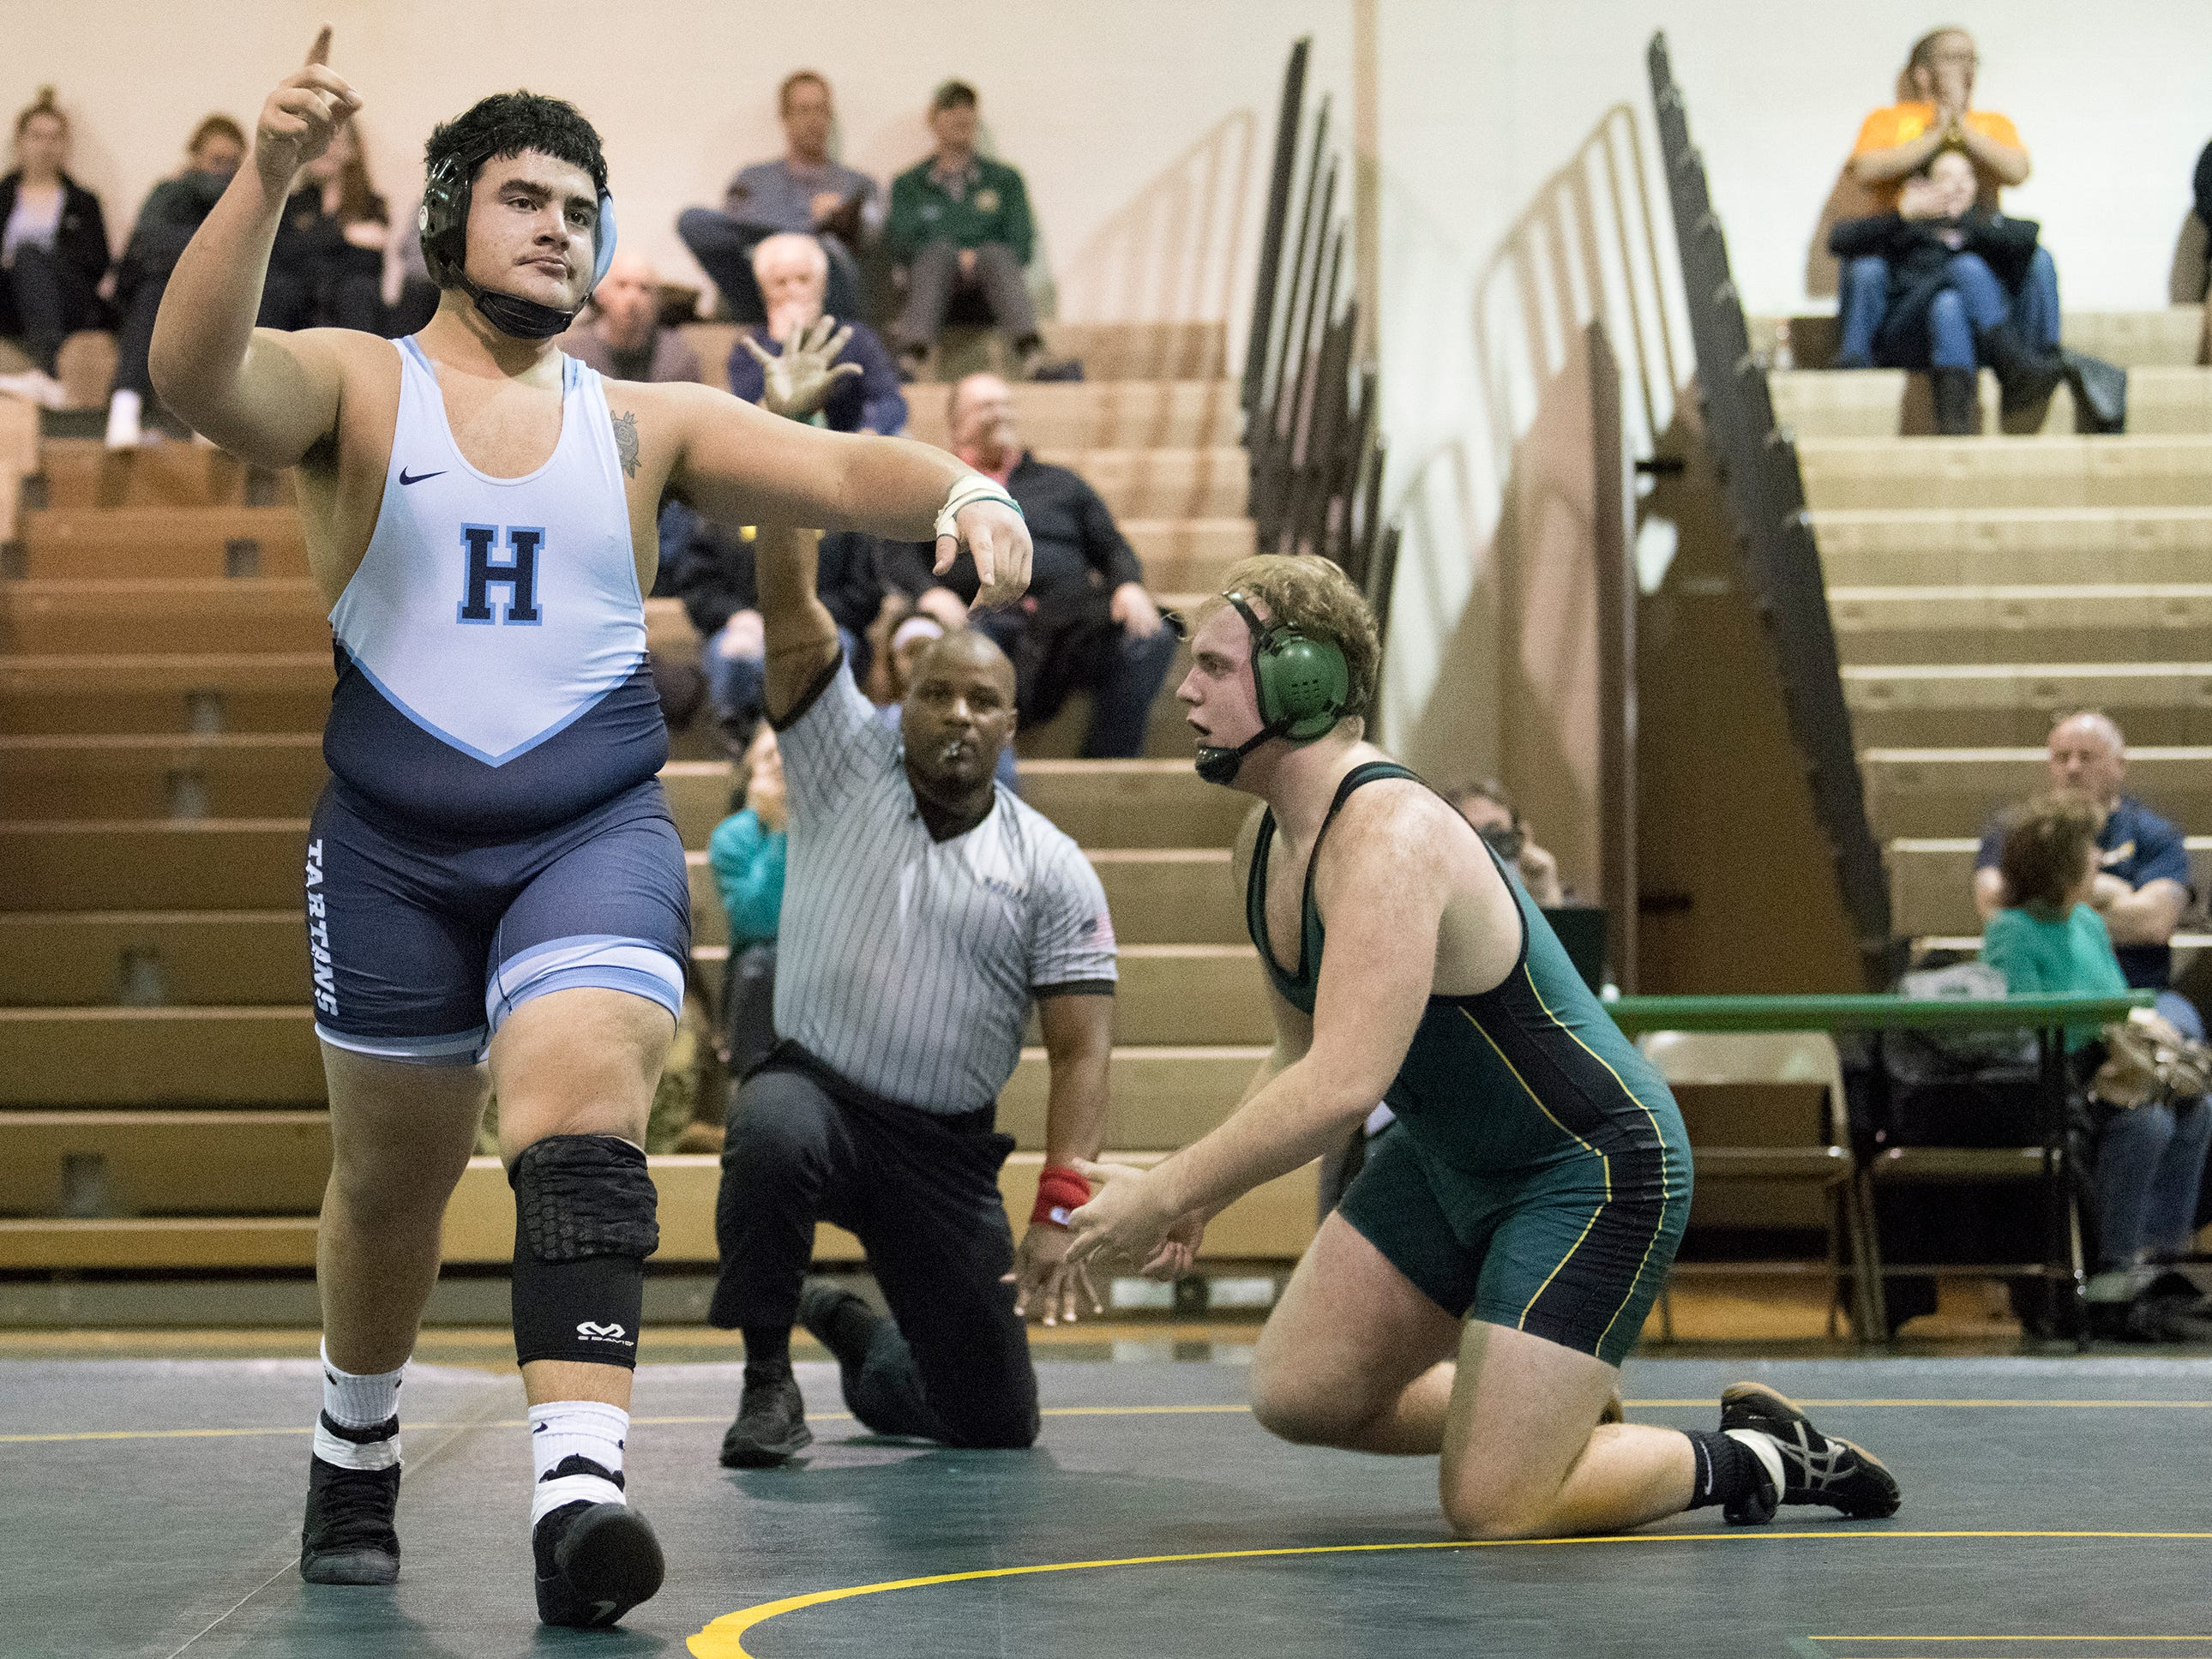 Highland's Jose Ortiz pinned Clearview's Aidan Romano to win the 220 lb. bout of the South Jersey Group 4 semifinal round wrestling match held at Clearview High School on Wednesday, February 6, 2019.   Clearview defeated Highland, 40-27.